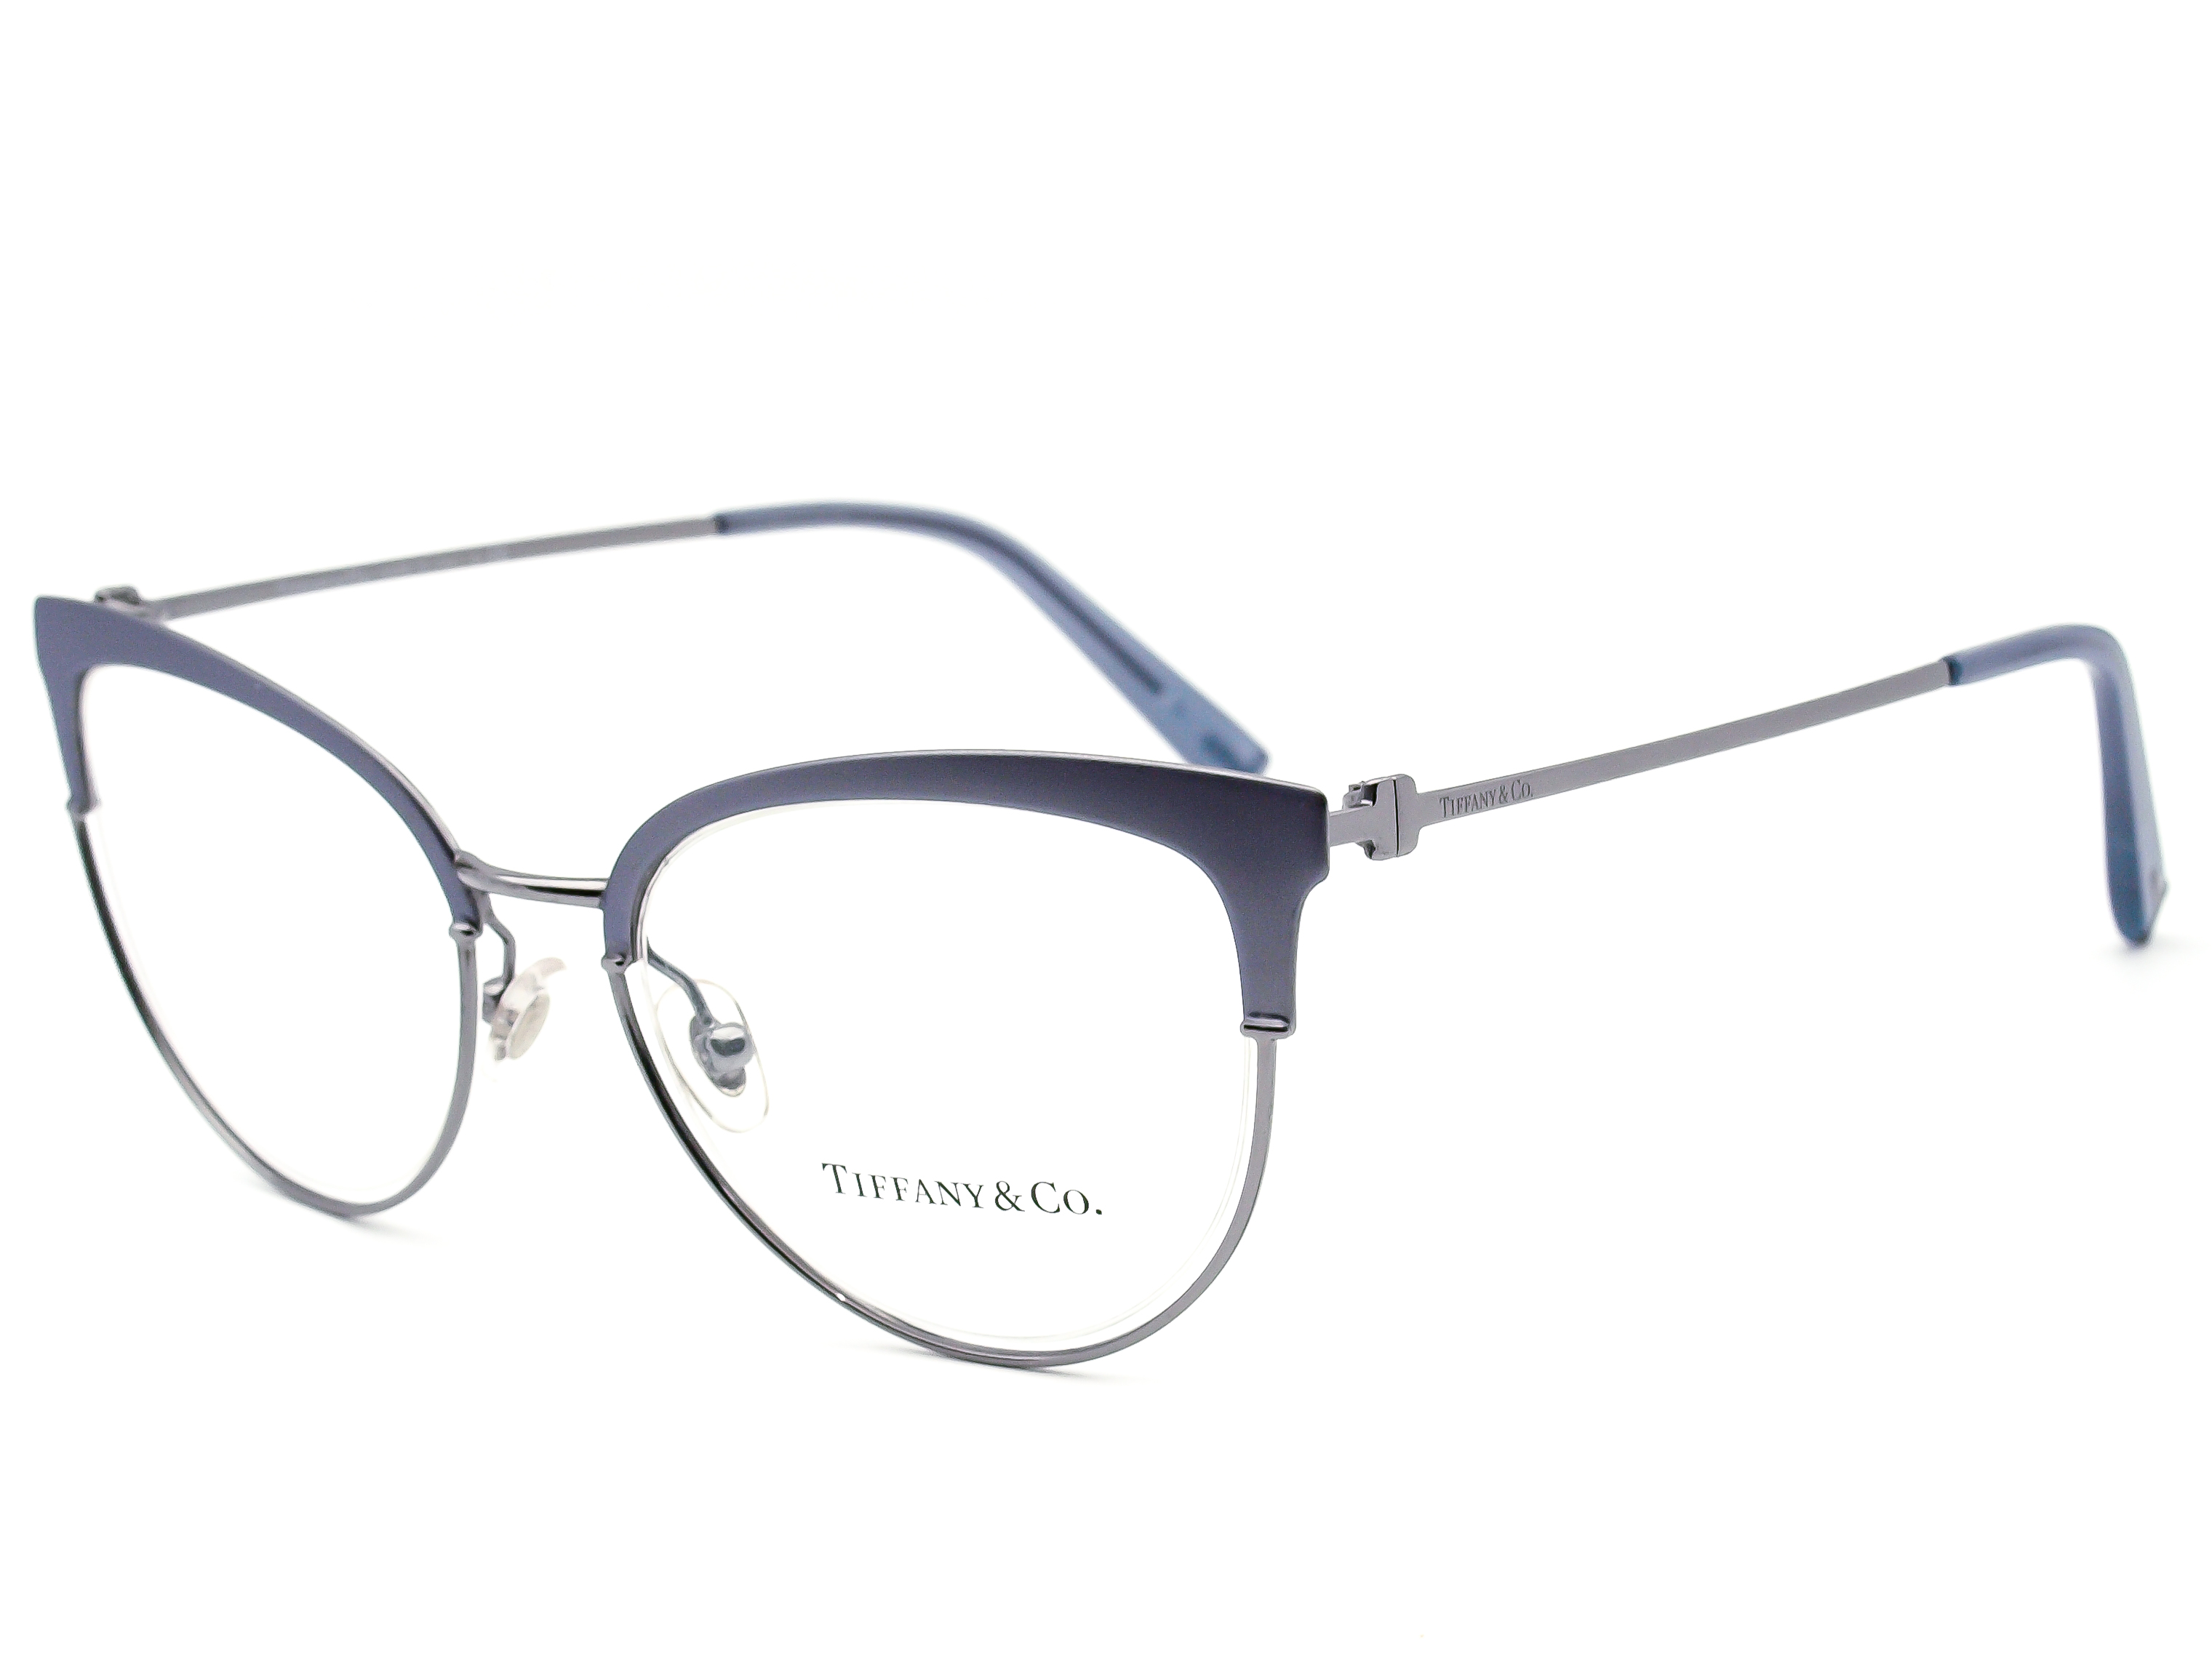 Tiffany & Co Eyeglasses TF1132 6134 Blue/Gunmetal Cat Eye Frame Italy 51[]18 140